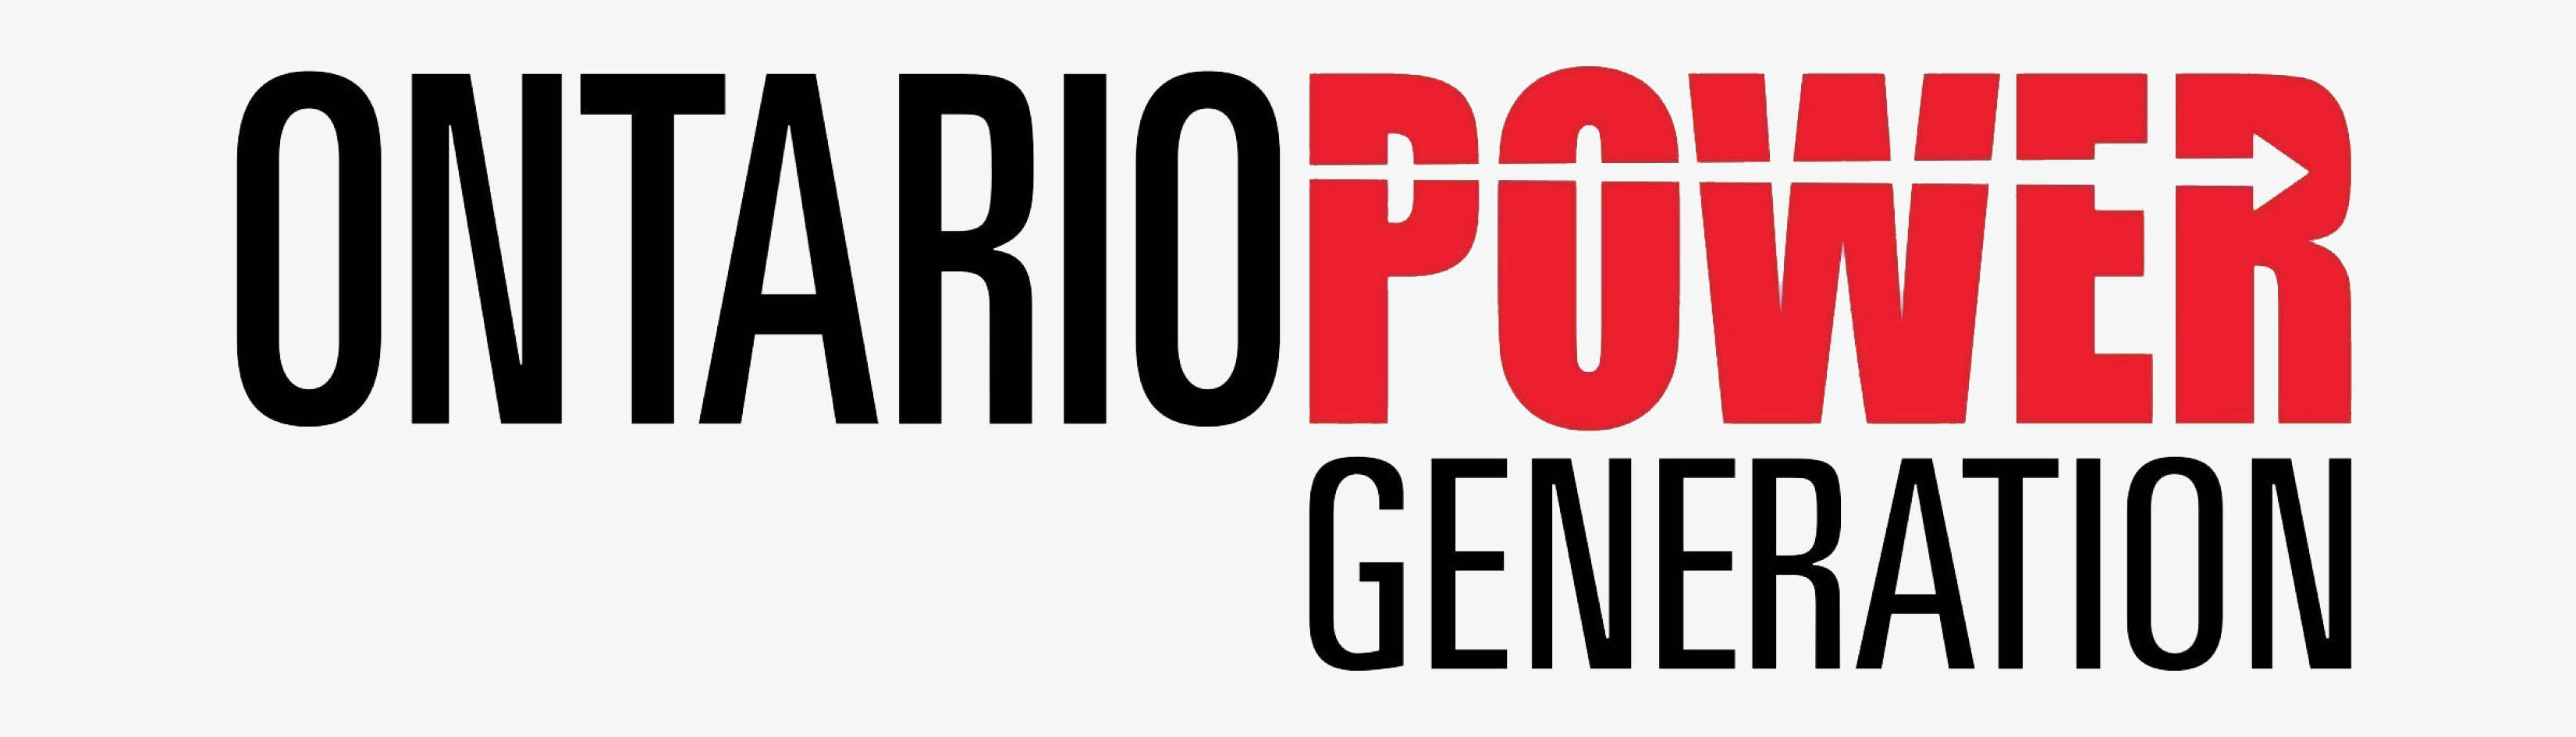 Logo of Ontario Power